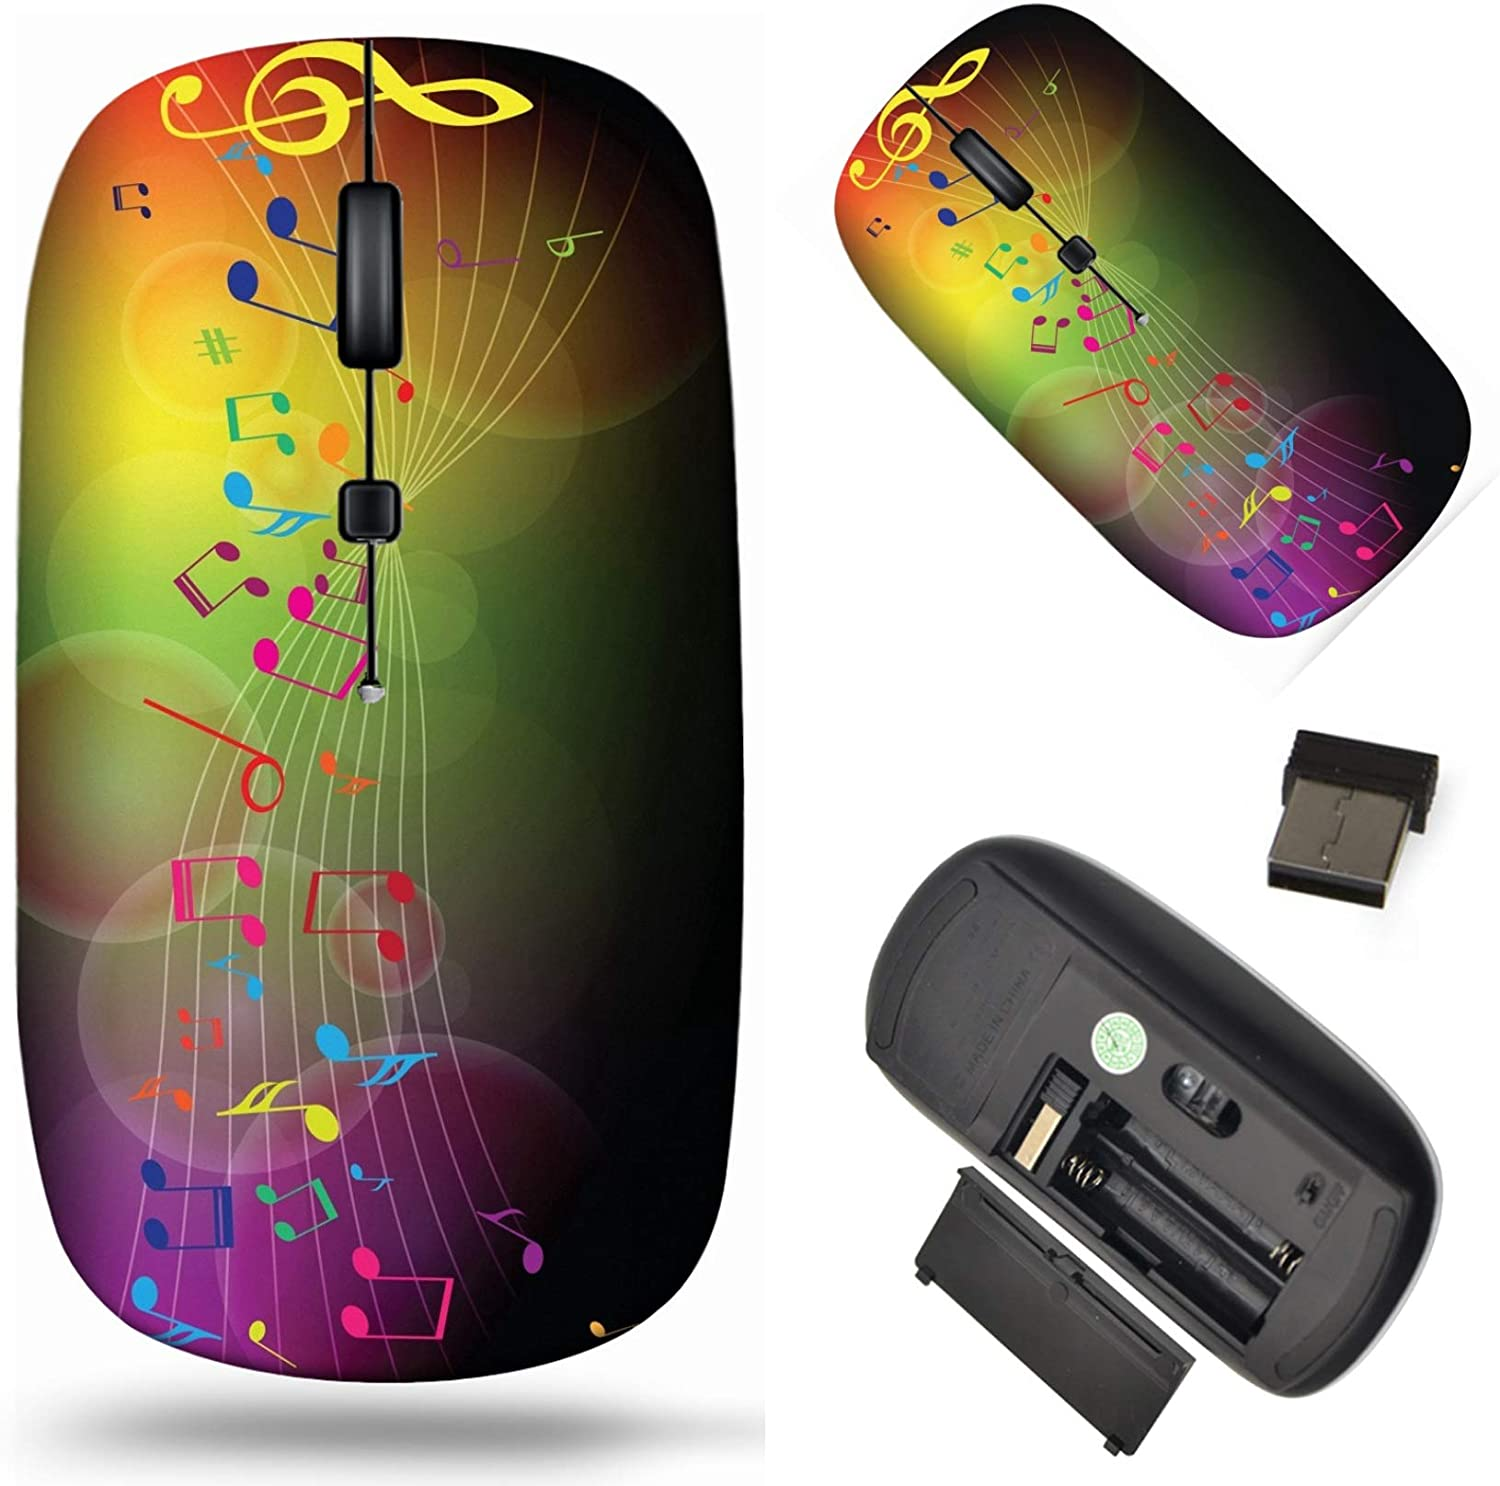 Sale Wireless Computer Mouse 2.4G with Cor Receiver Laptop USB Seattle Mall